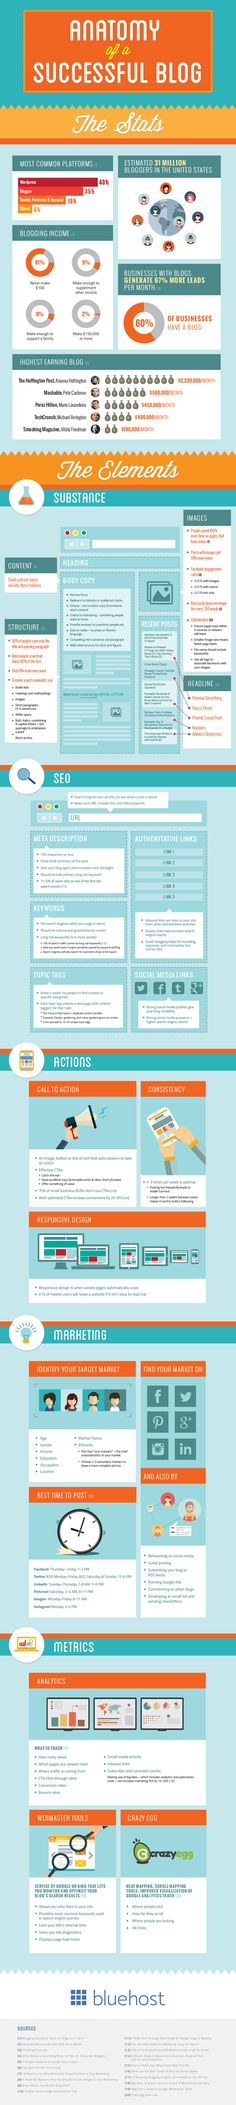 Infographic: The Anatomy of a Successful Blog